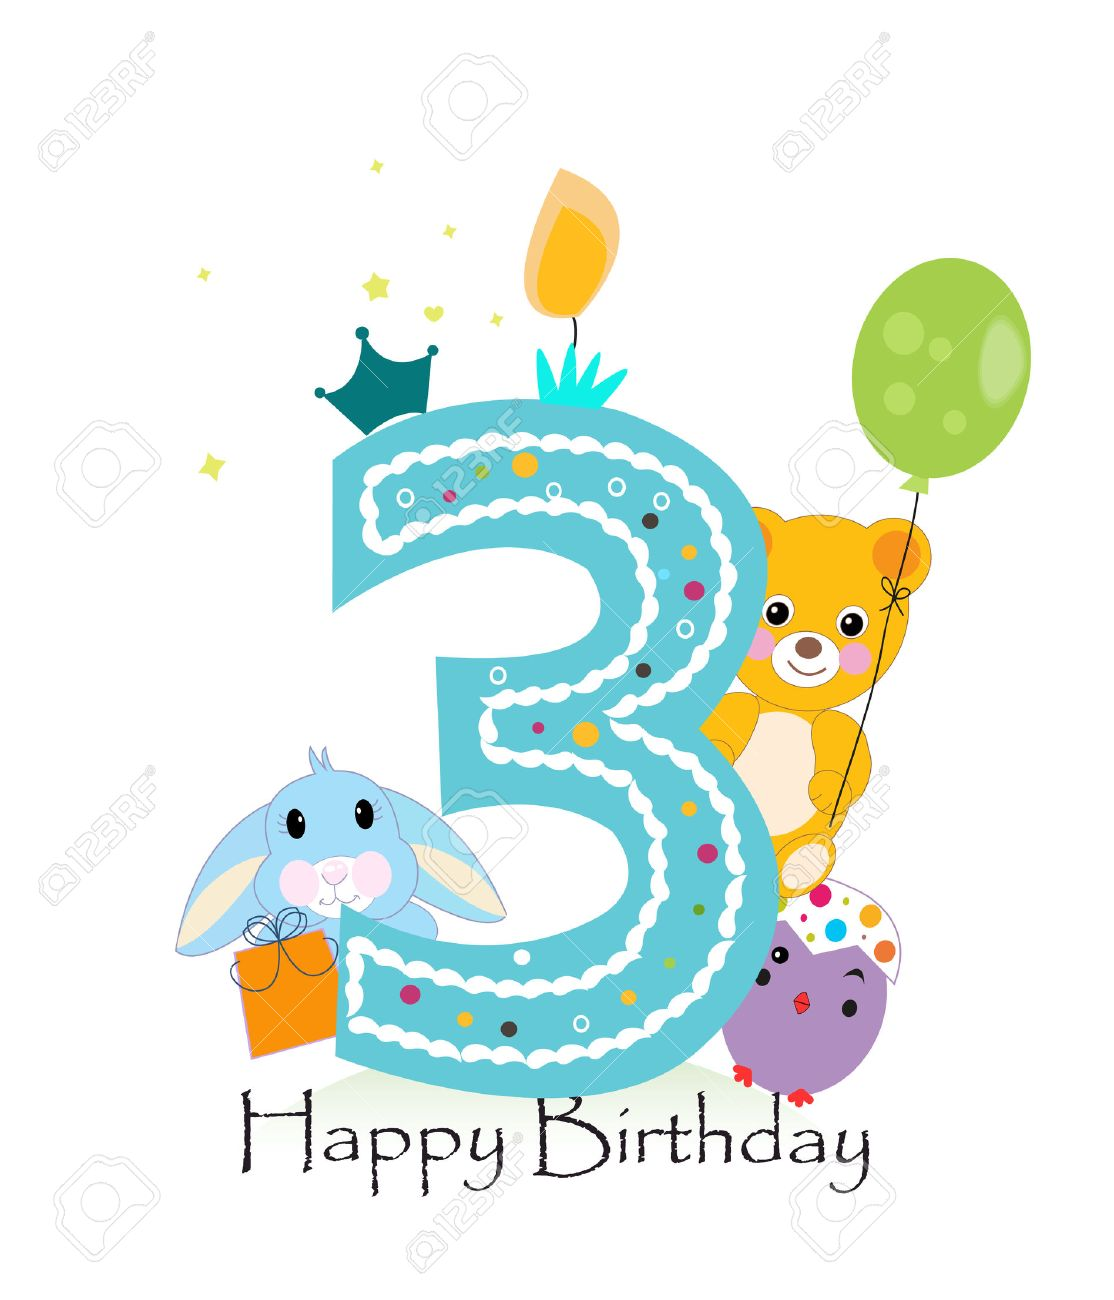 Happy third birthday candle. Baby boy greeting card with bunny, chick and teddy bear vector - 55679506